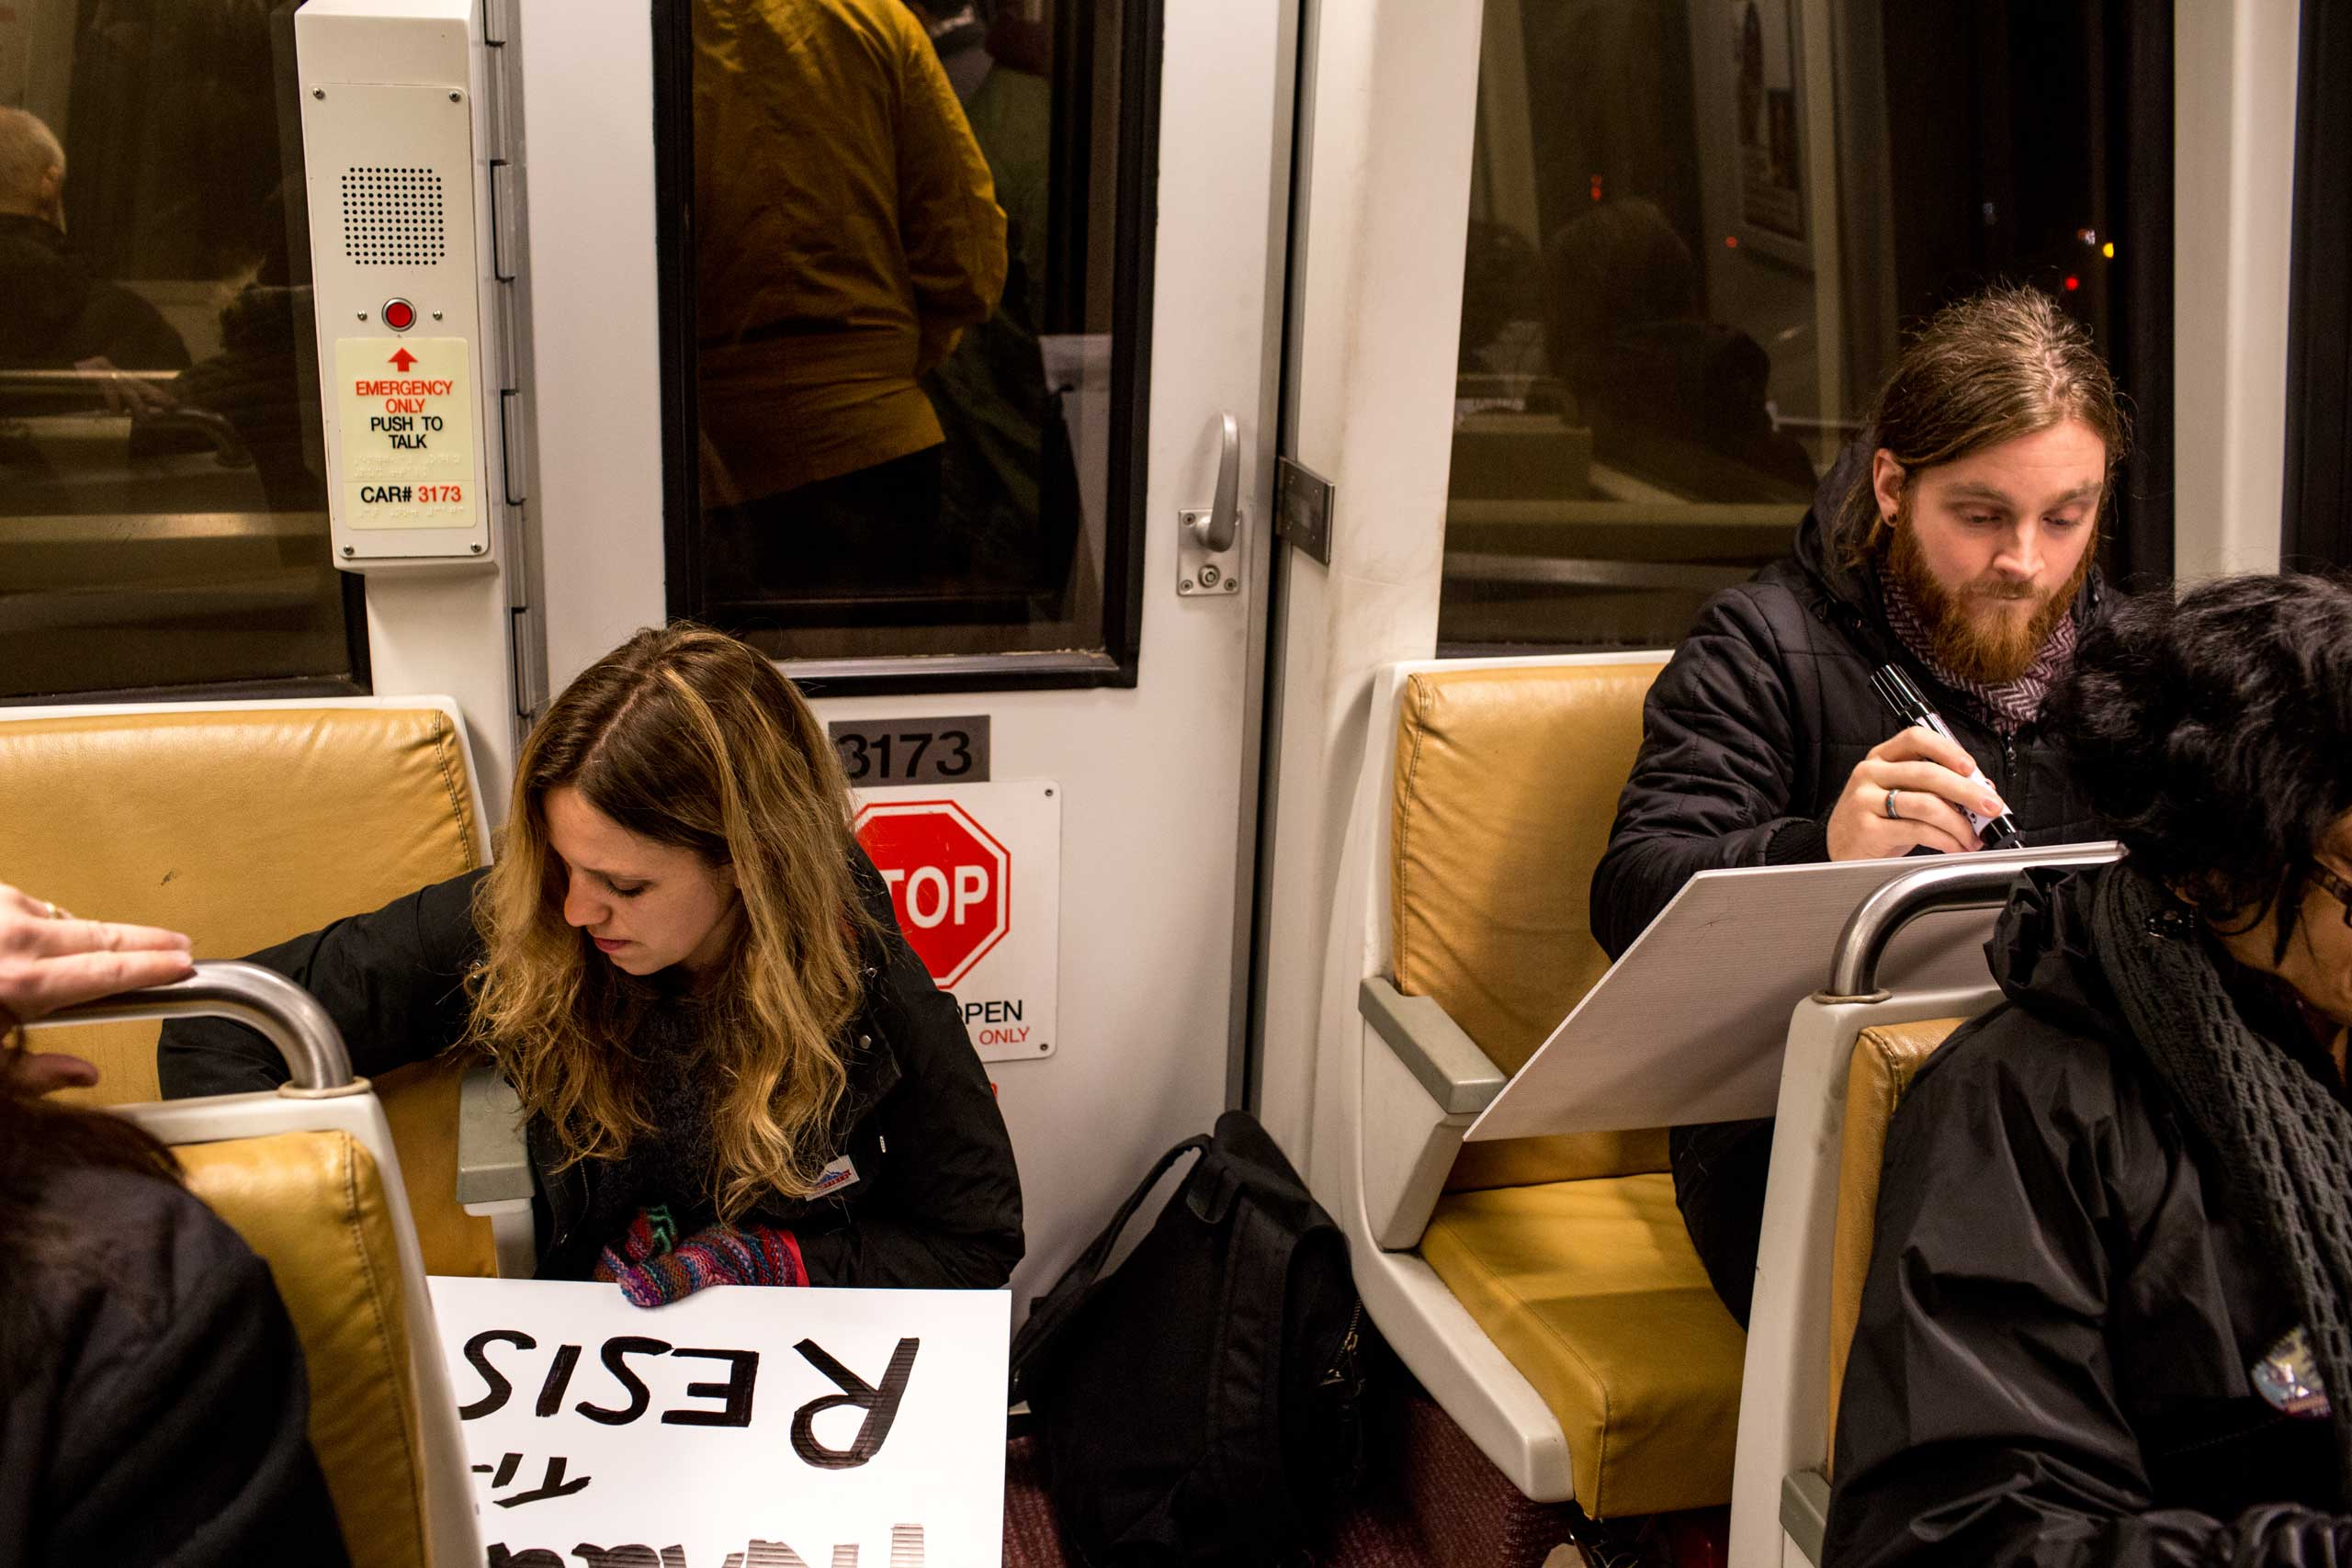 6:12 AM: Anna and Andrew finish their signs on the metro. Other protesters join the members of Answer Coalition, mingling and chatting with each other, while some mumble about how much they need coffee. Trump supporters are also riding the metro. The two groups stare at each other awkwardly in the early morning.